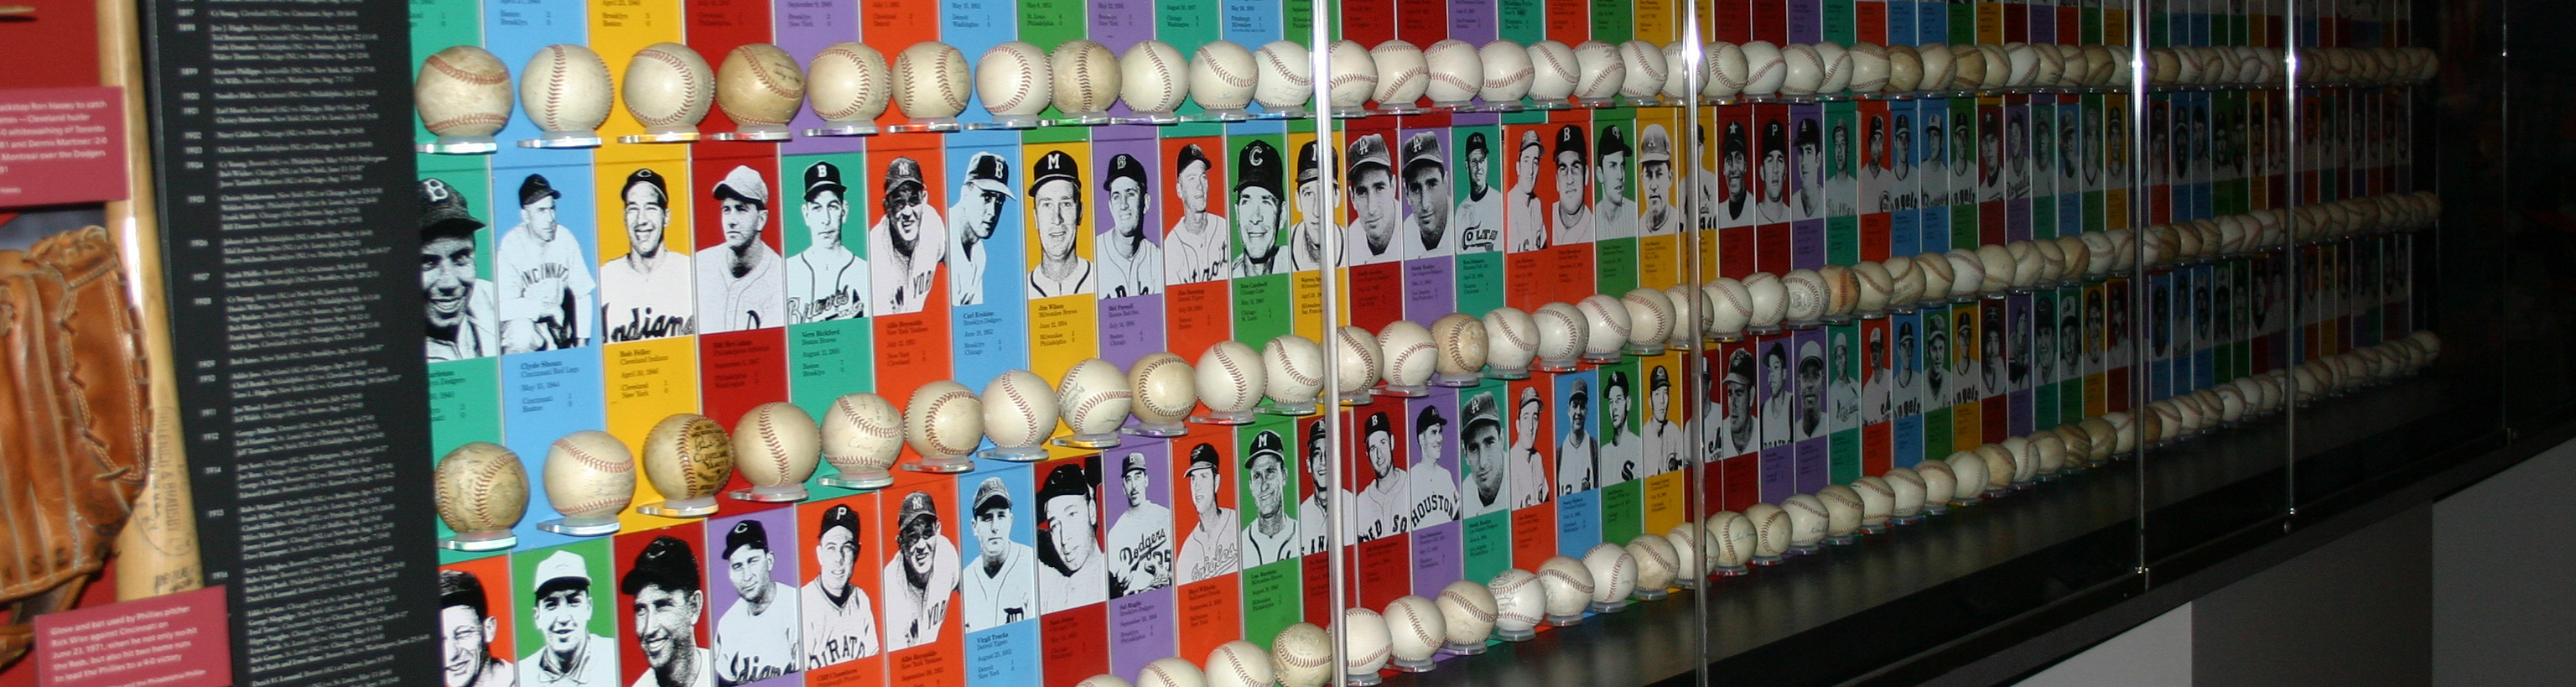 baseball hall of fame,cooperstown trips,east coast baseball trips, baseball tours,family vacation packages